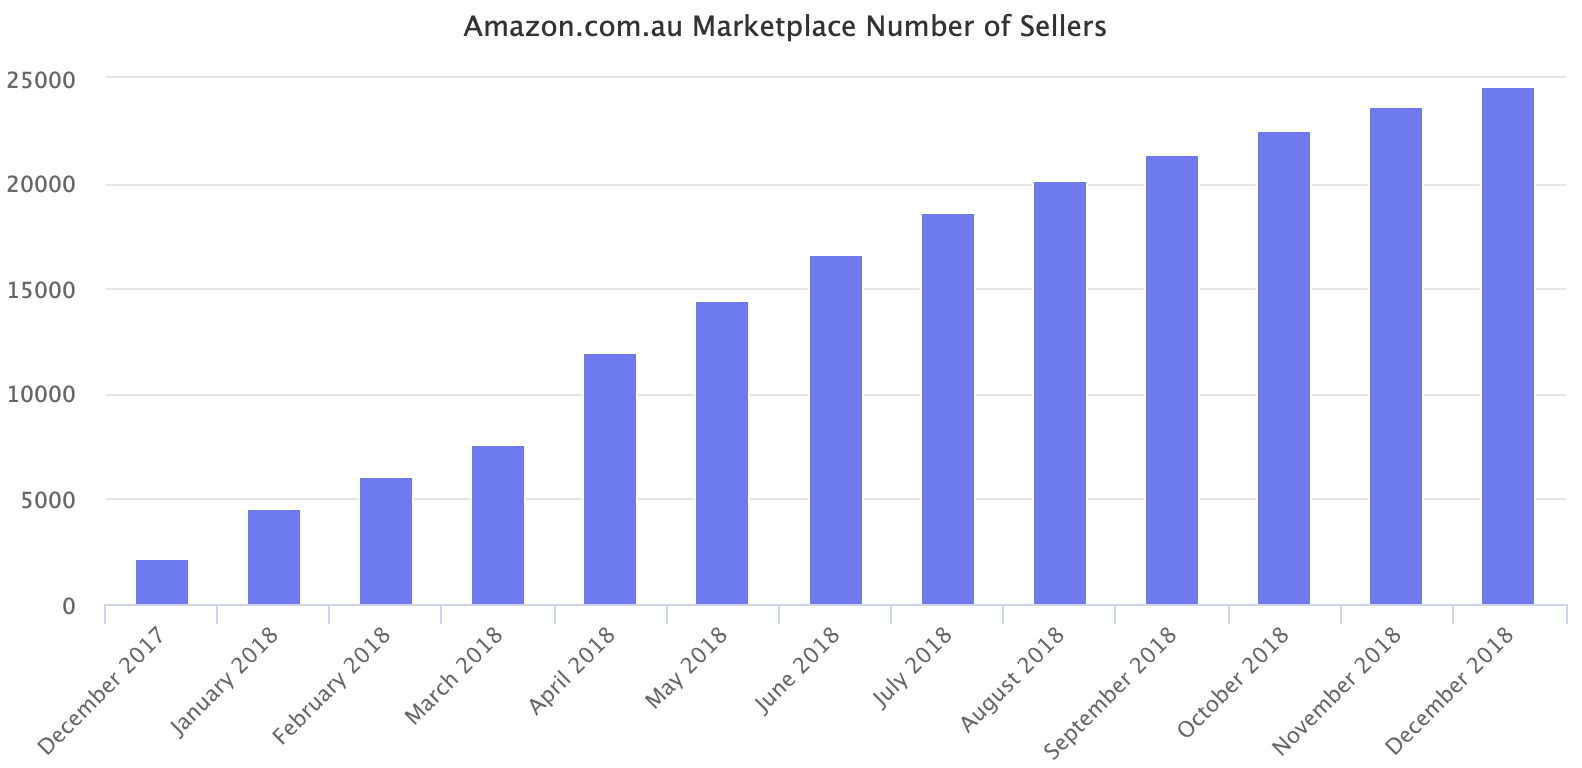 Amazon.com.au Marketplace Number of Sellers